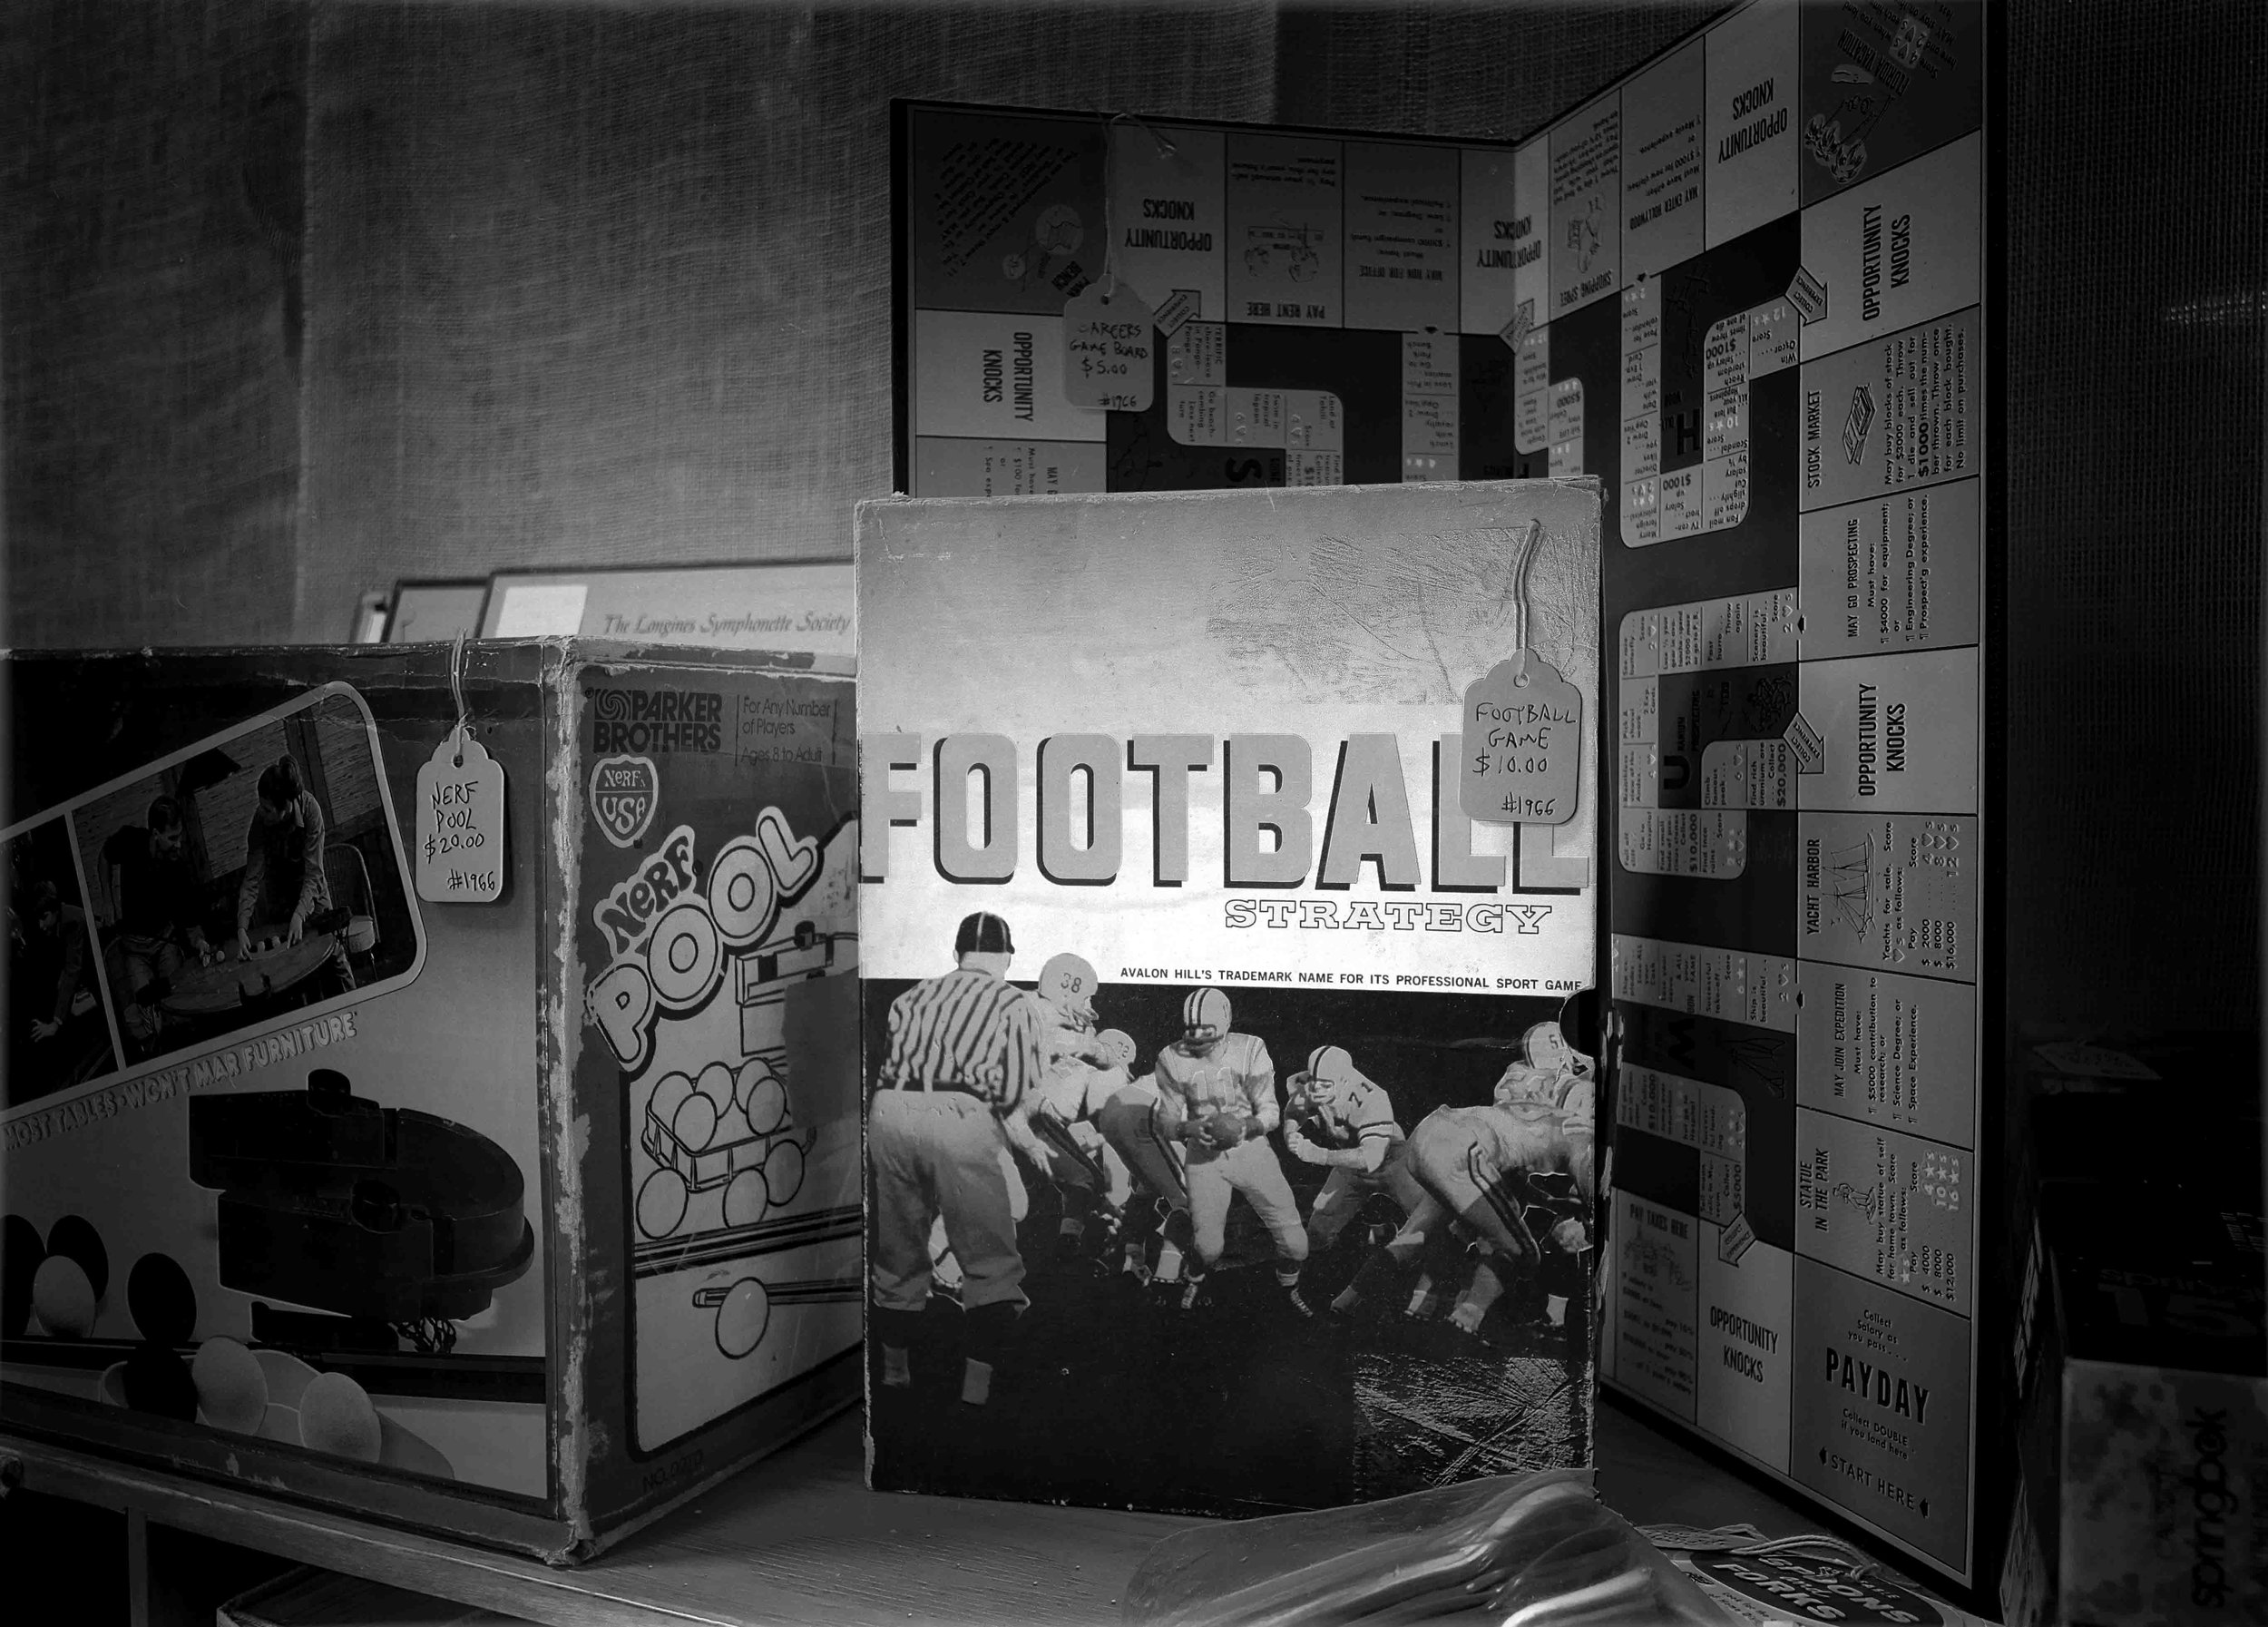 081317 Football Strategy Low Res BW.jpg